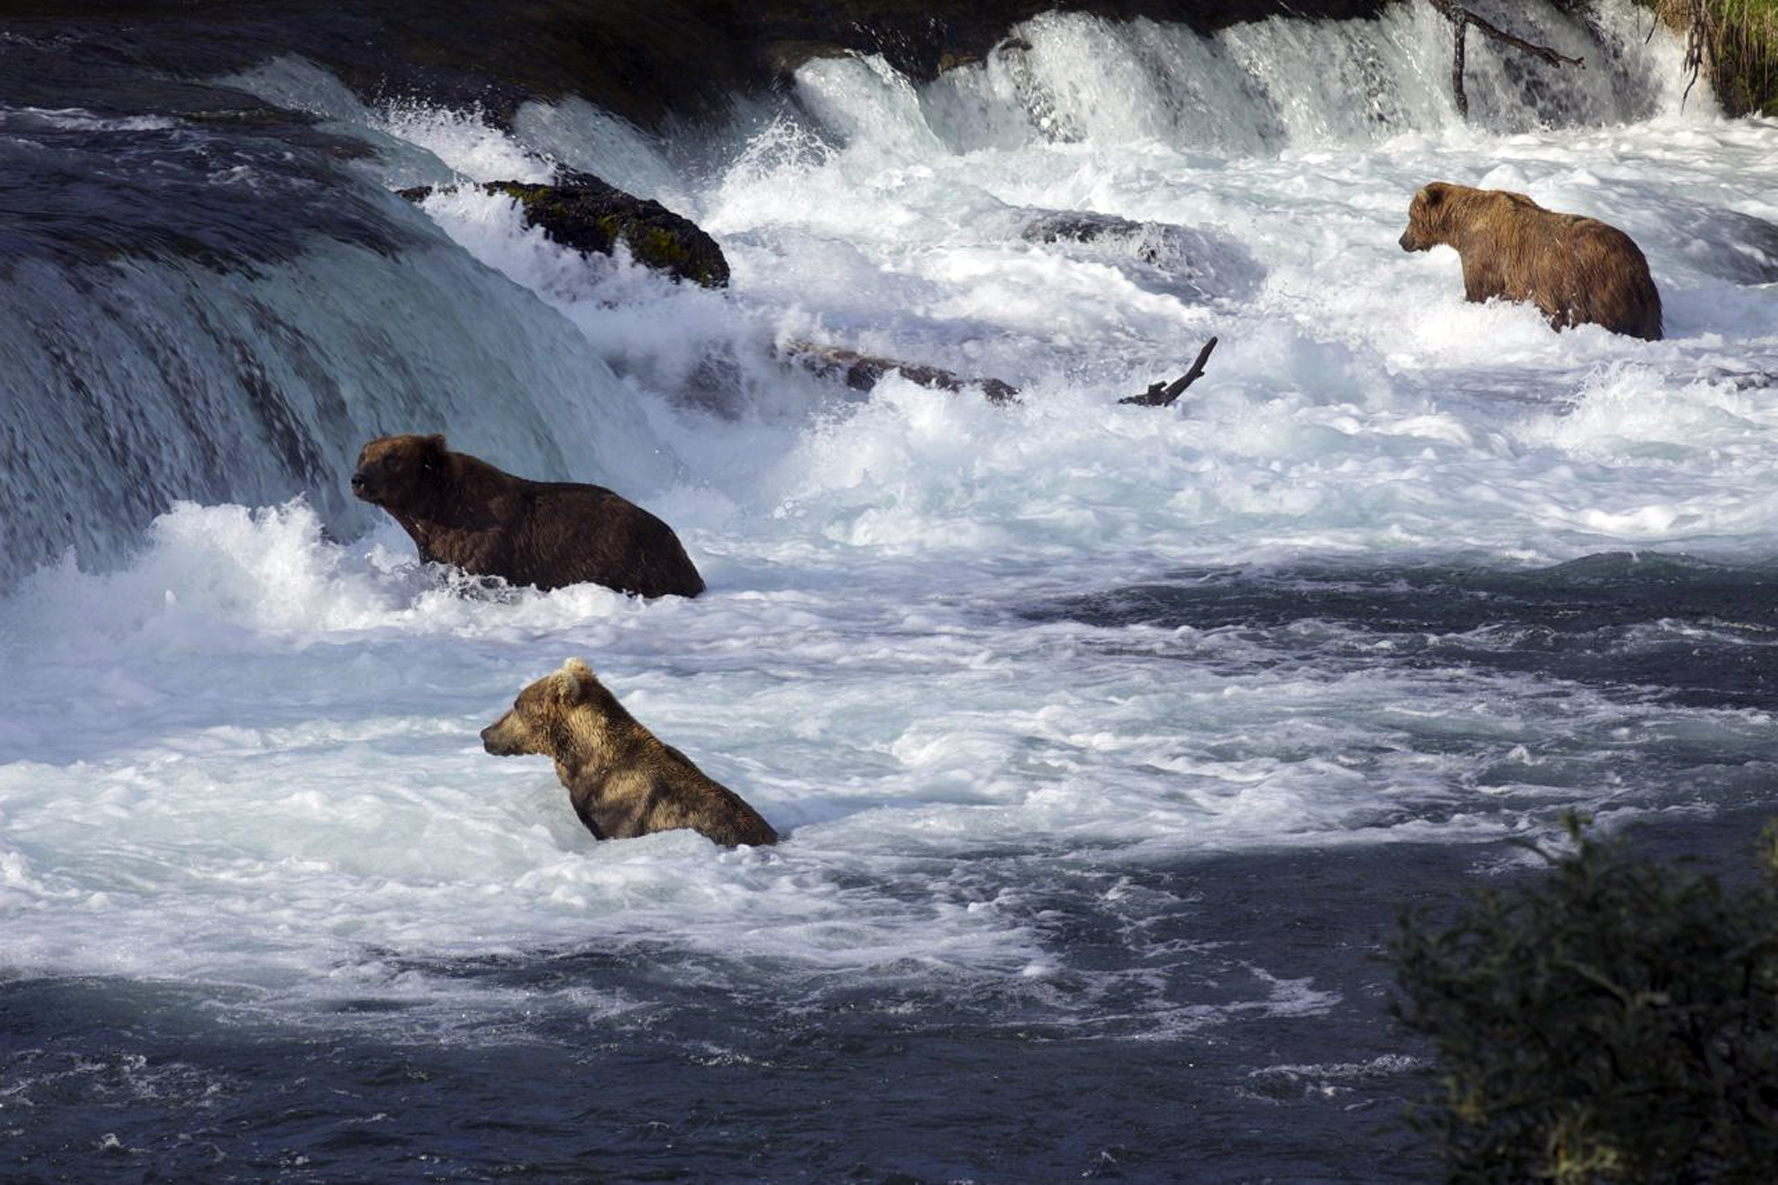 Brooks Falls Brown Bears - Photo by explore.org